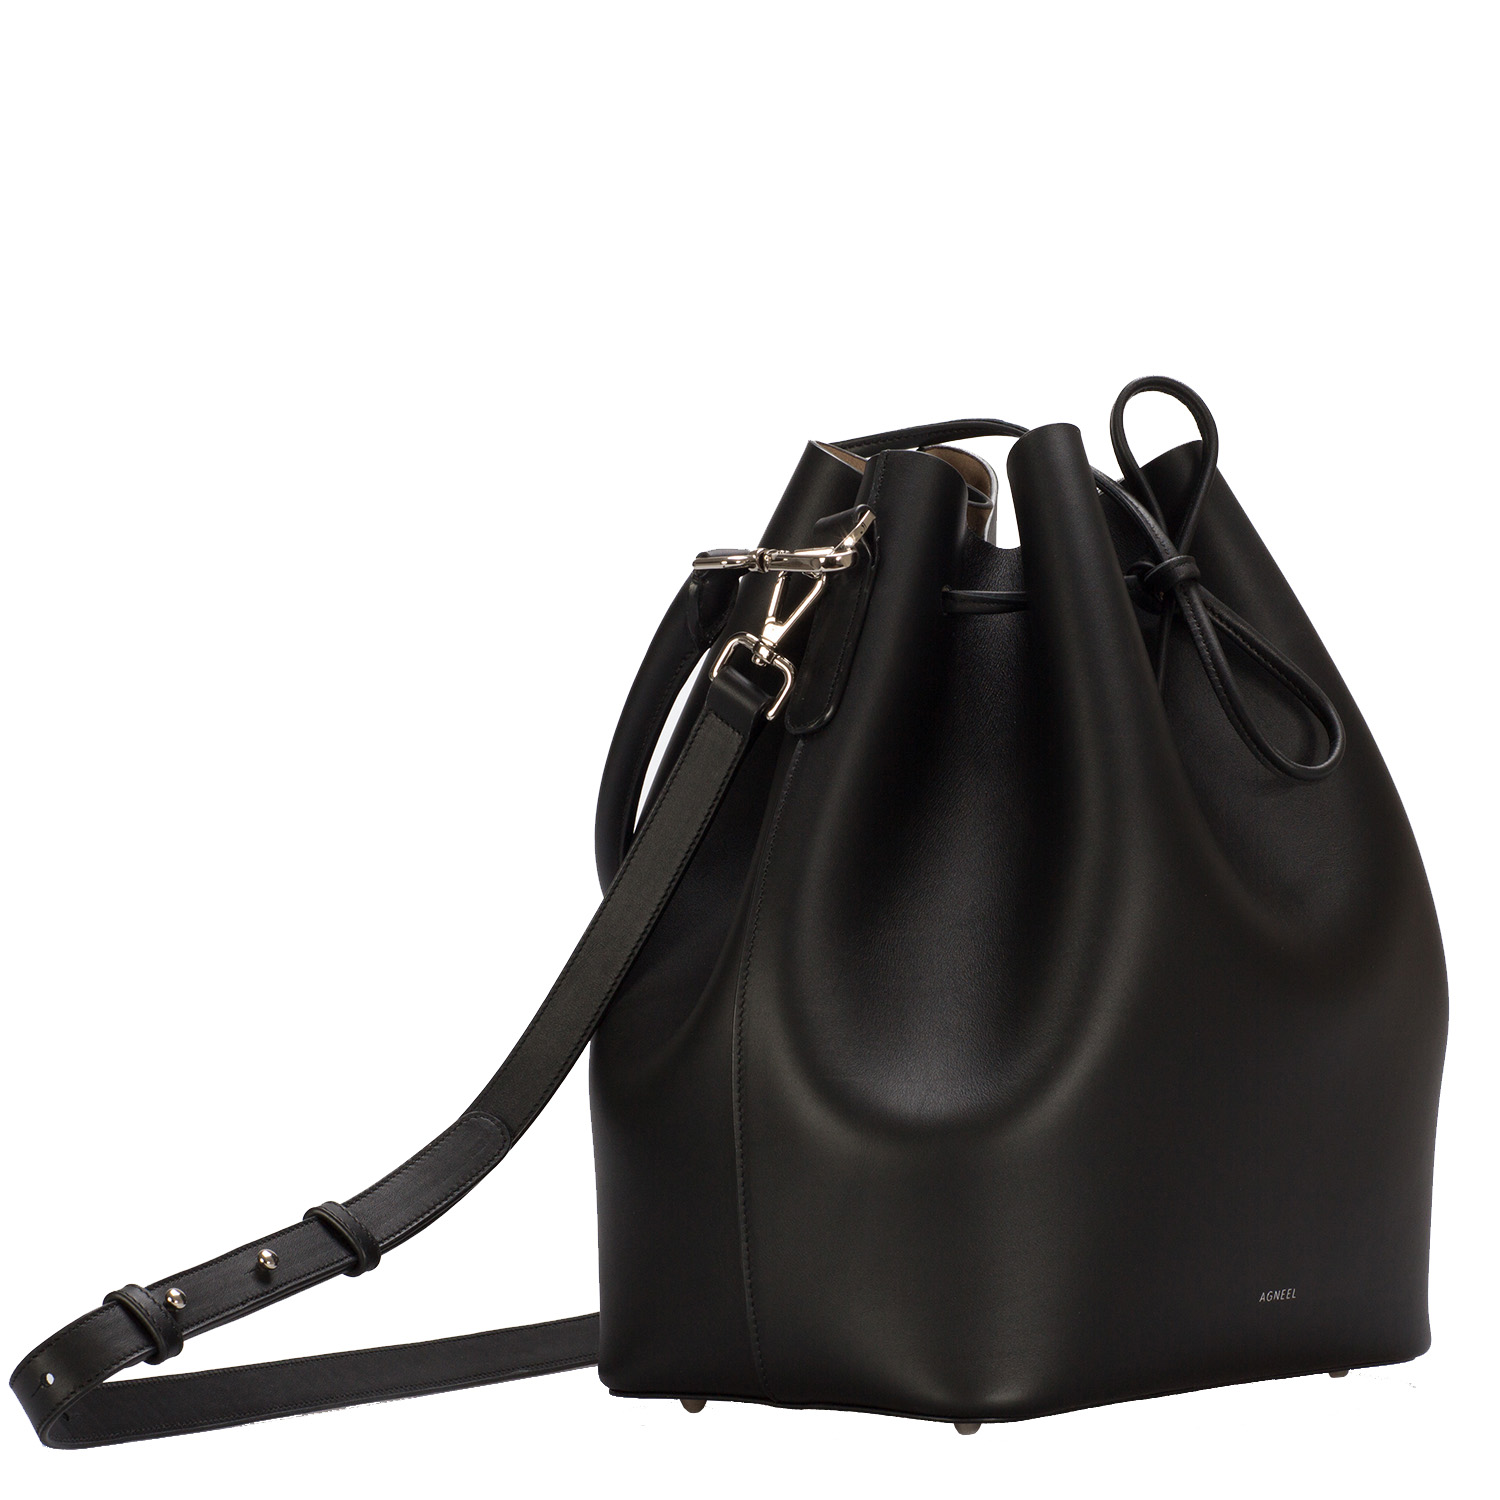 ALESSA DRAWSTRING BAG IN BABY-CALFSKIN